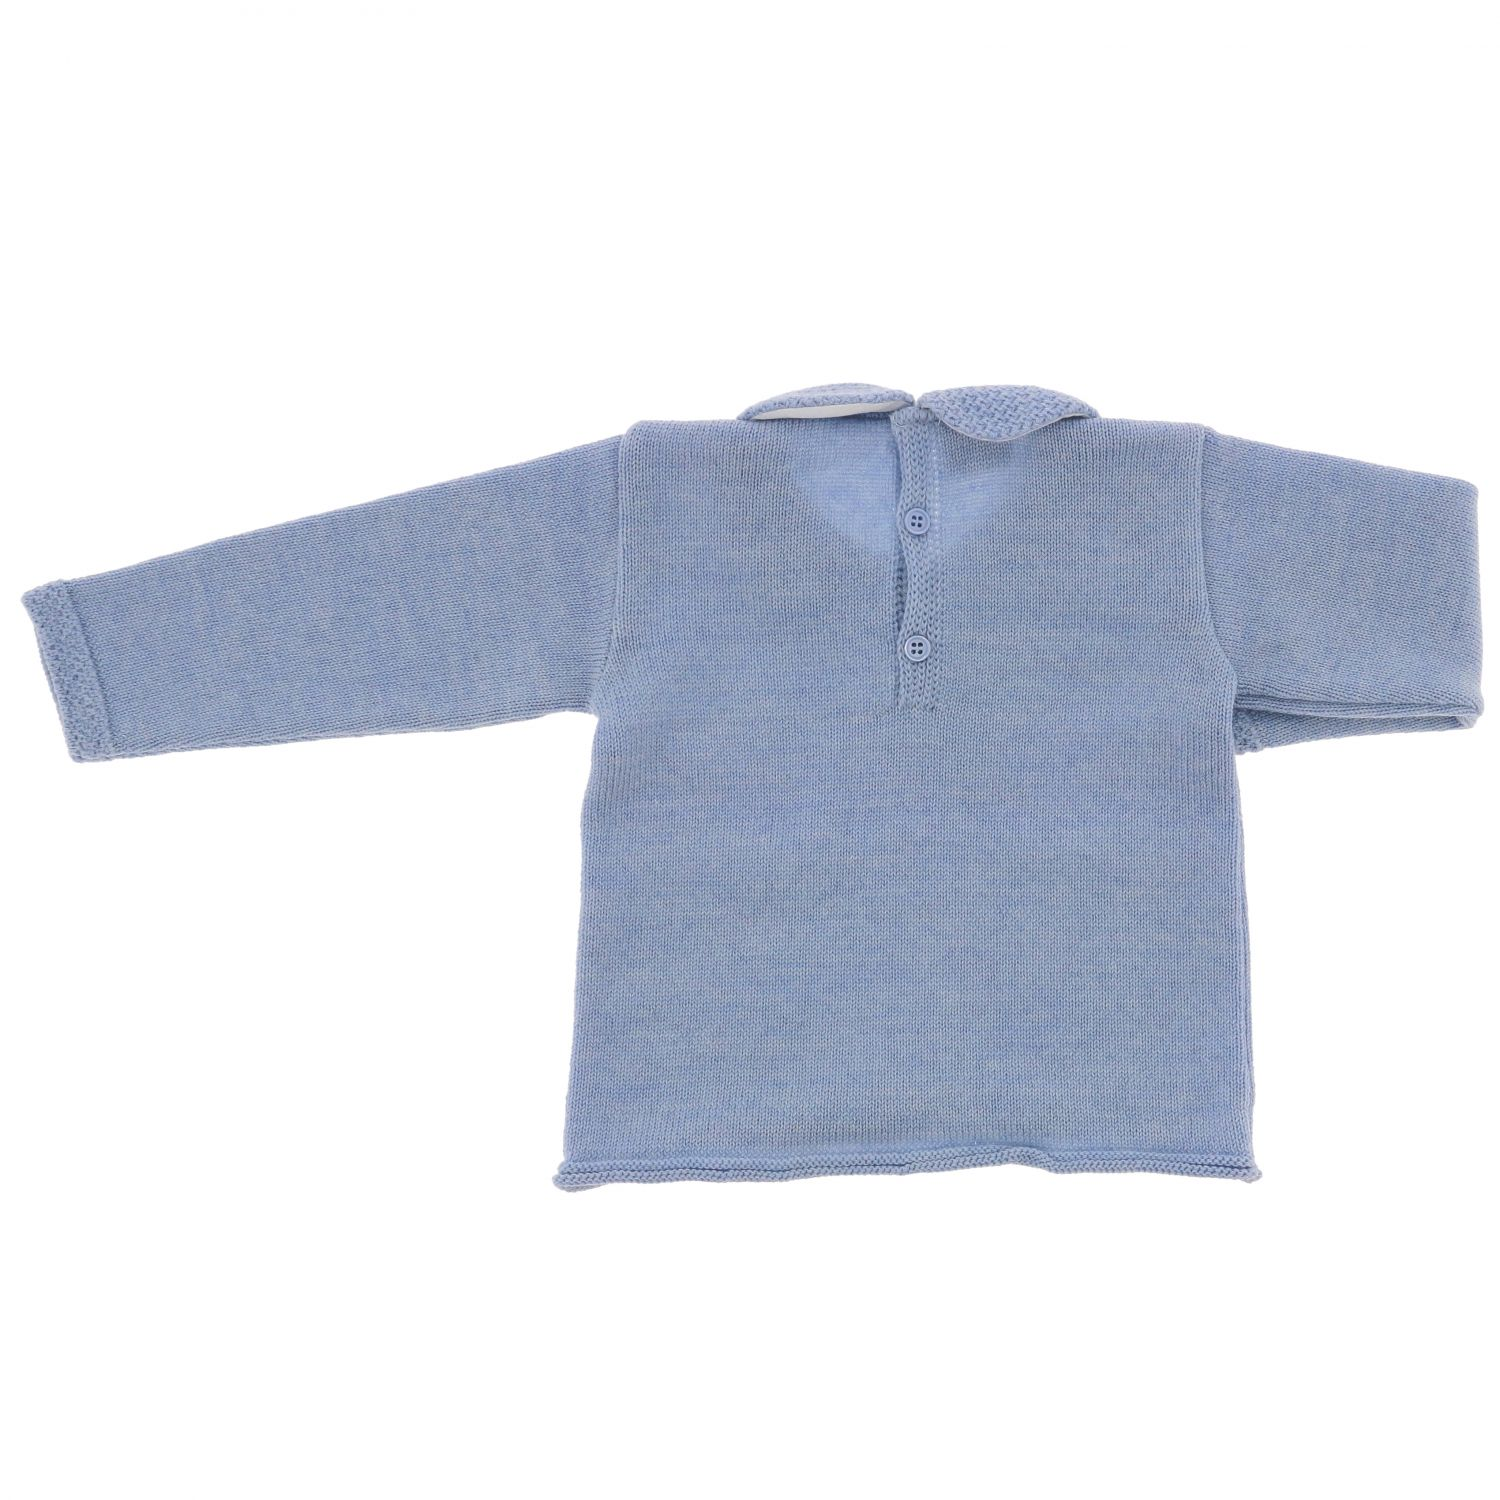 Jumper kids Paz Rodriguez blue 2